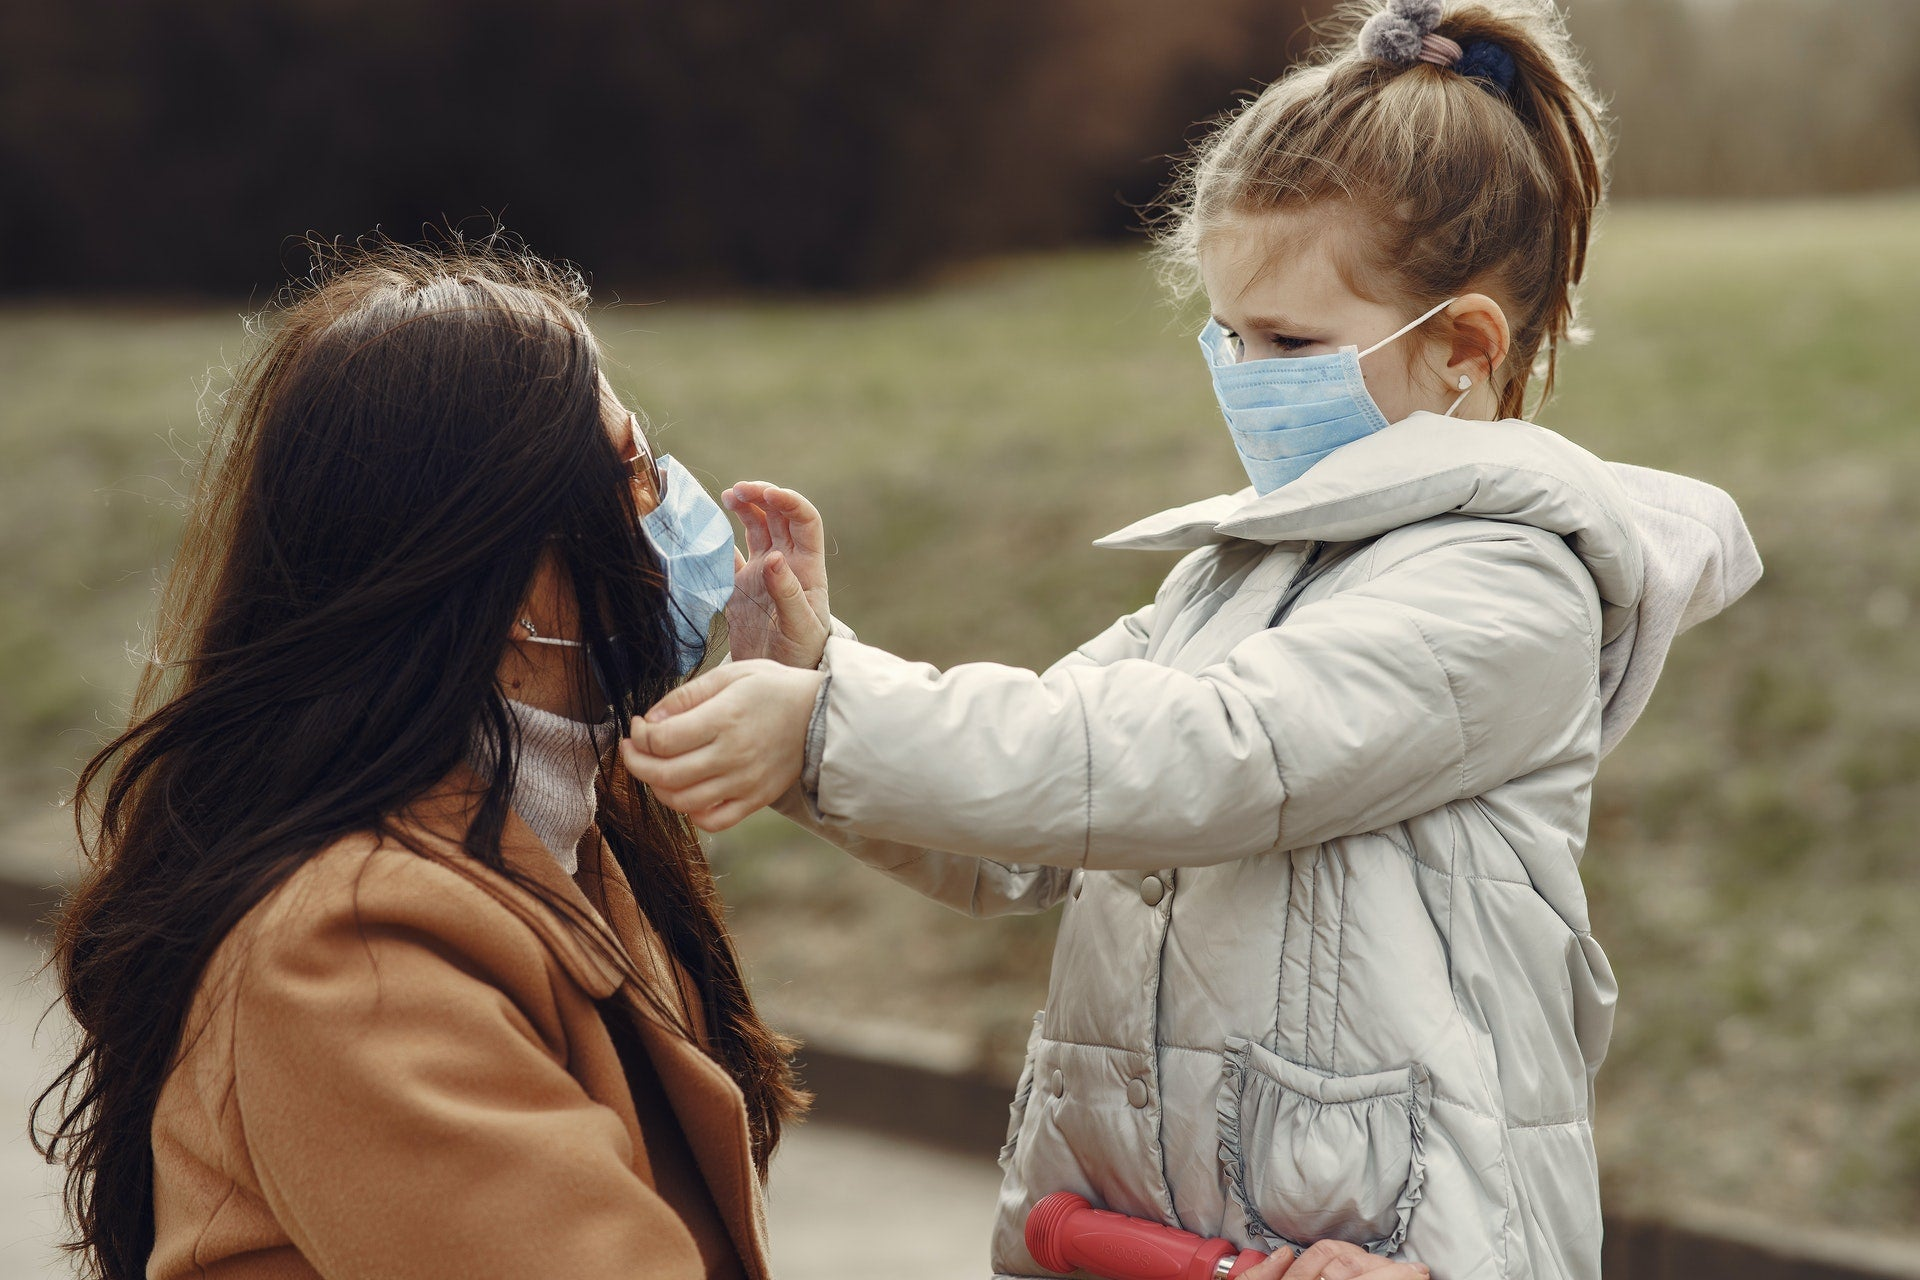 A child in a medical mask touches the face of a woman in a medical mask